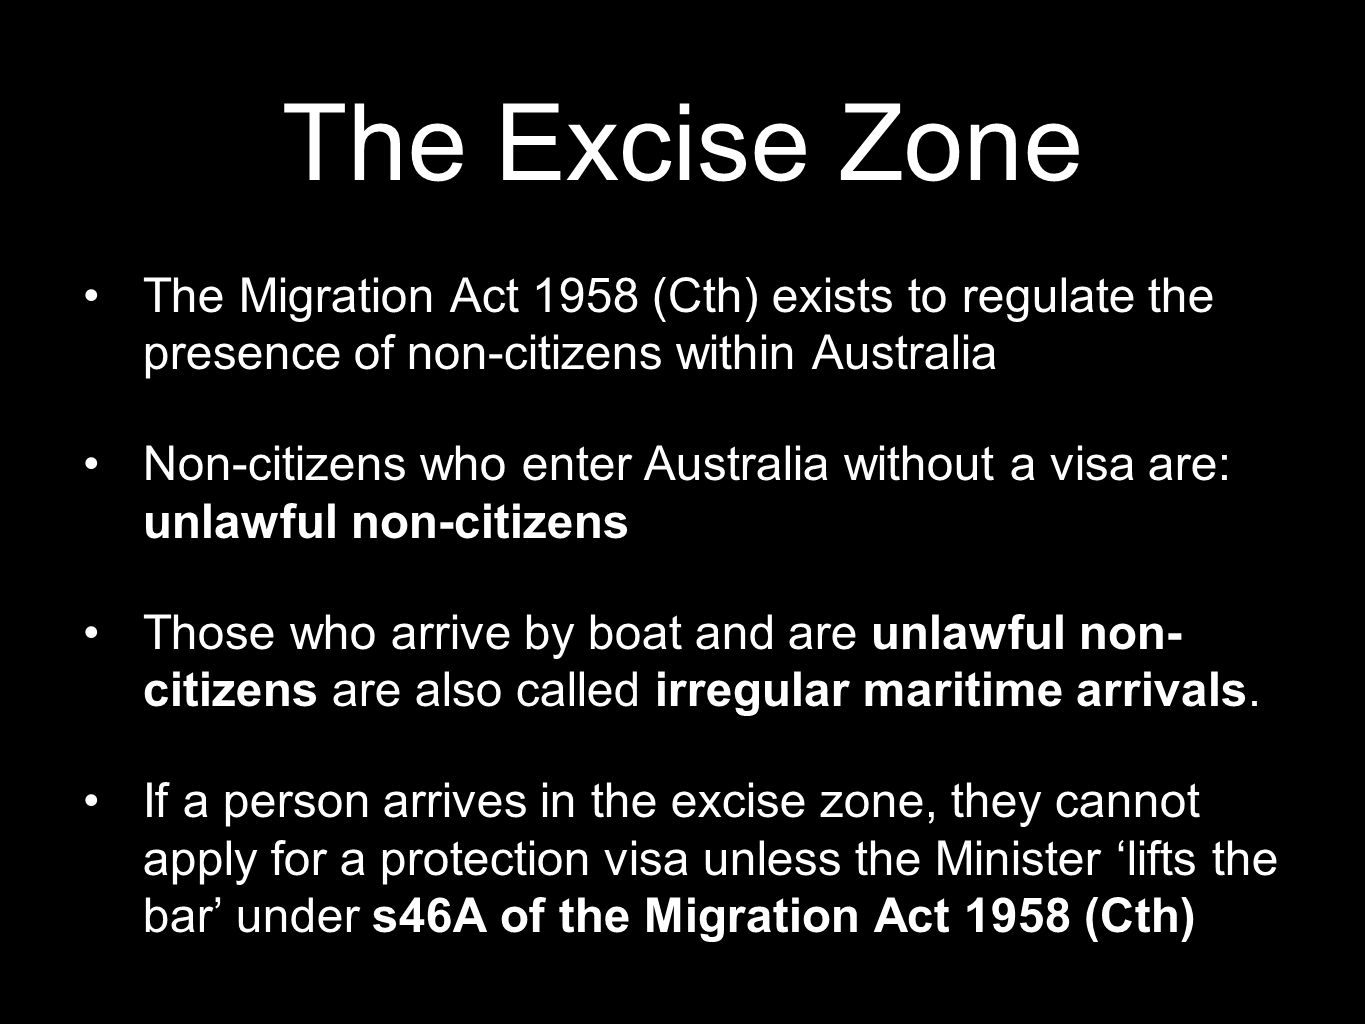 The Excise Zone The Migration Act 1958 (Cth) exists to regulate the presence of non-citizens within Australia.